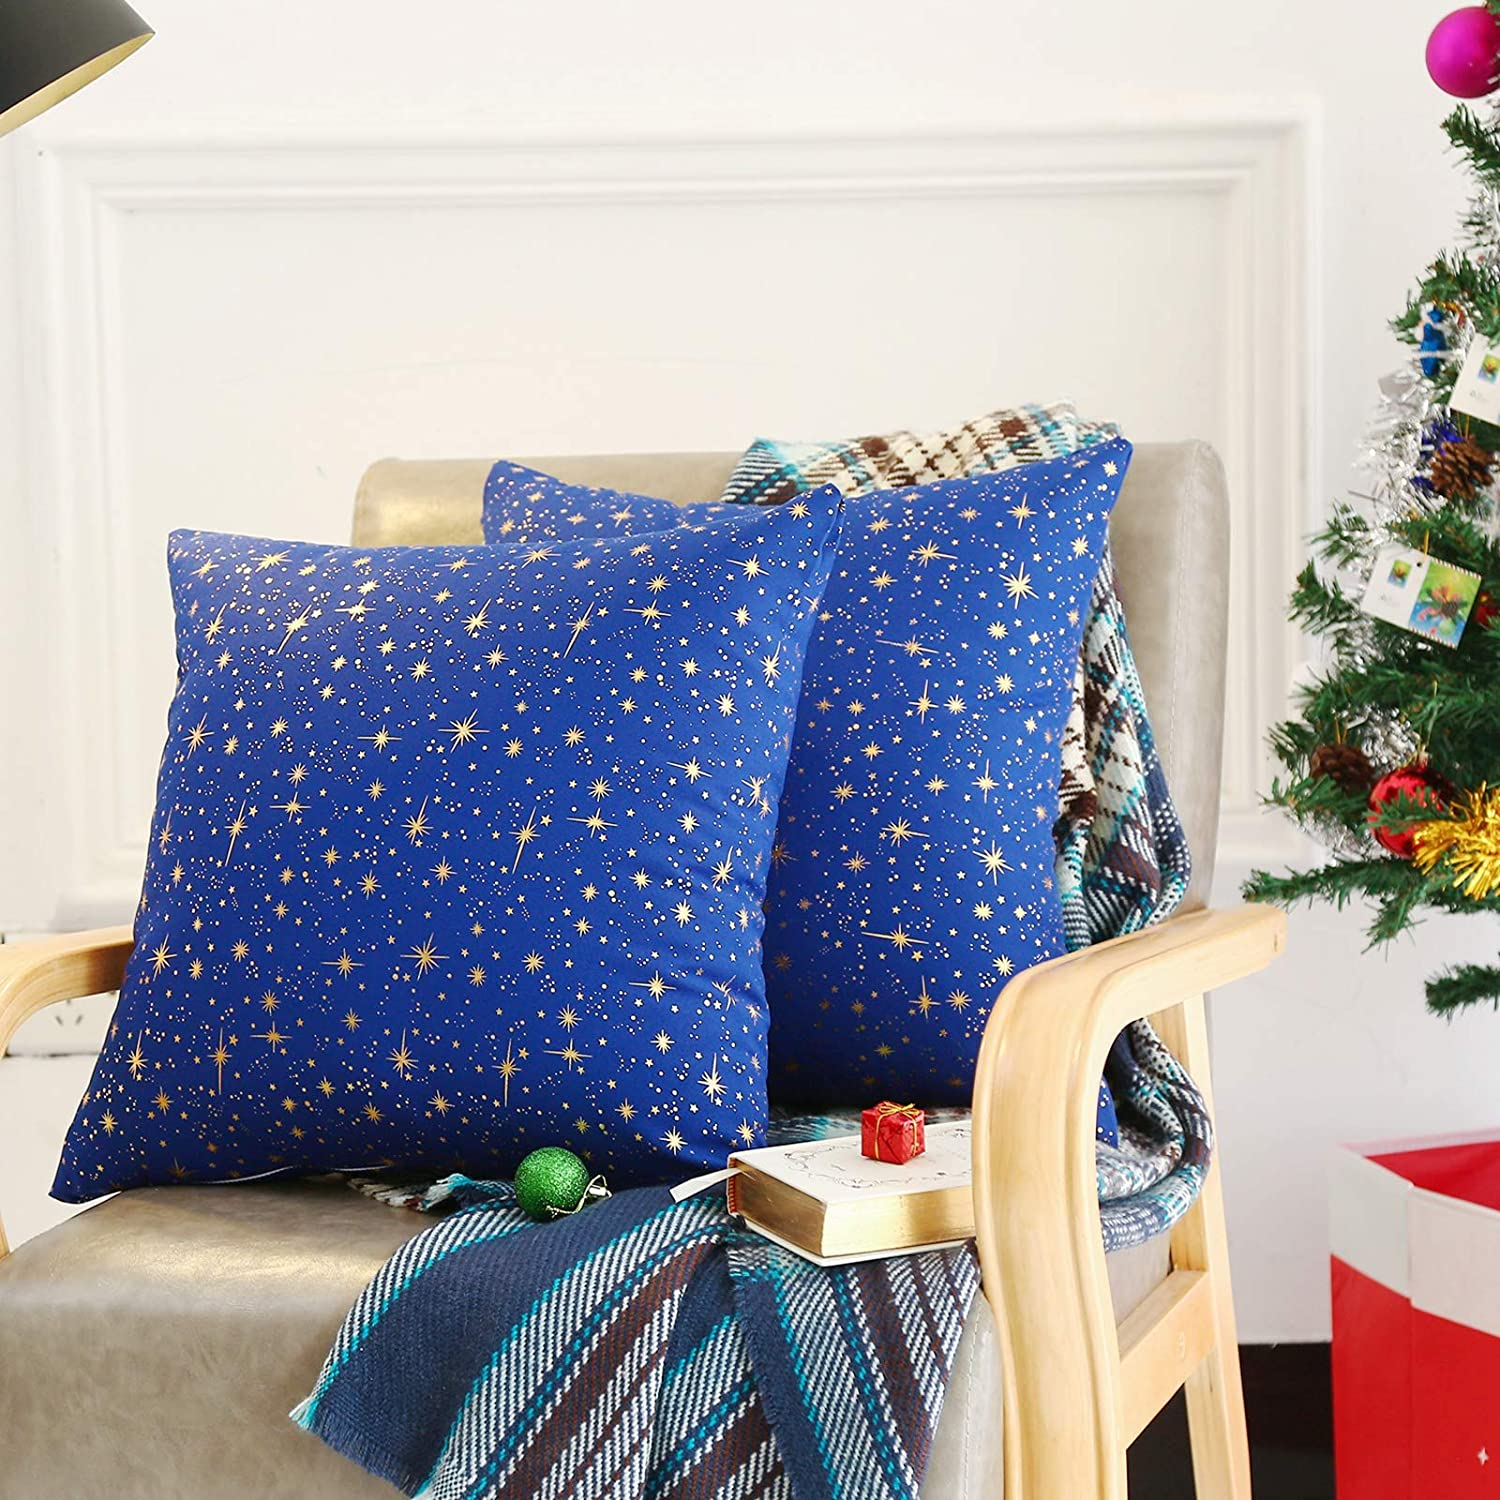 """Tosewever Set of 2 Christmas Linen Throw Pillow Covers 18 x 18 Inches, Xmas Holiday Square Throw Pillows Case for Sofa Couch Bed Outdoor Home Decorations (18"""" x 18"""", Golden/Blue Star)"""